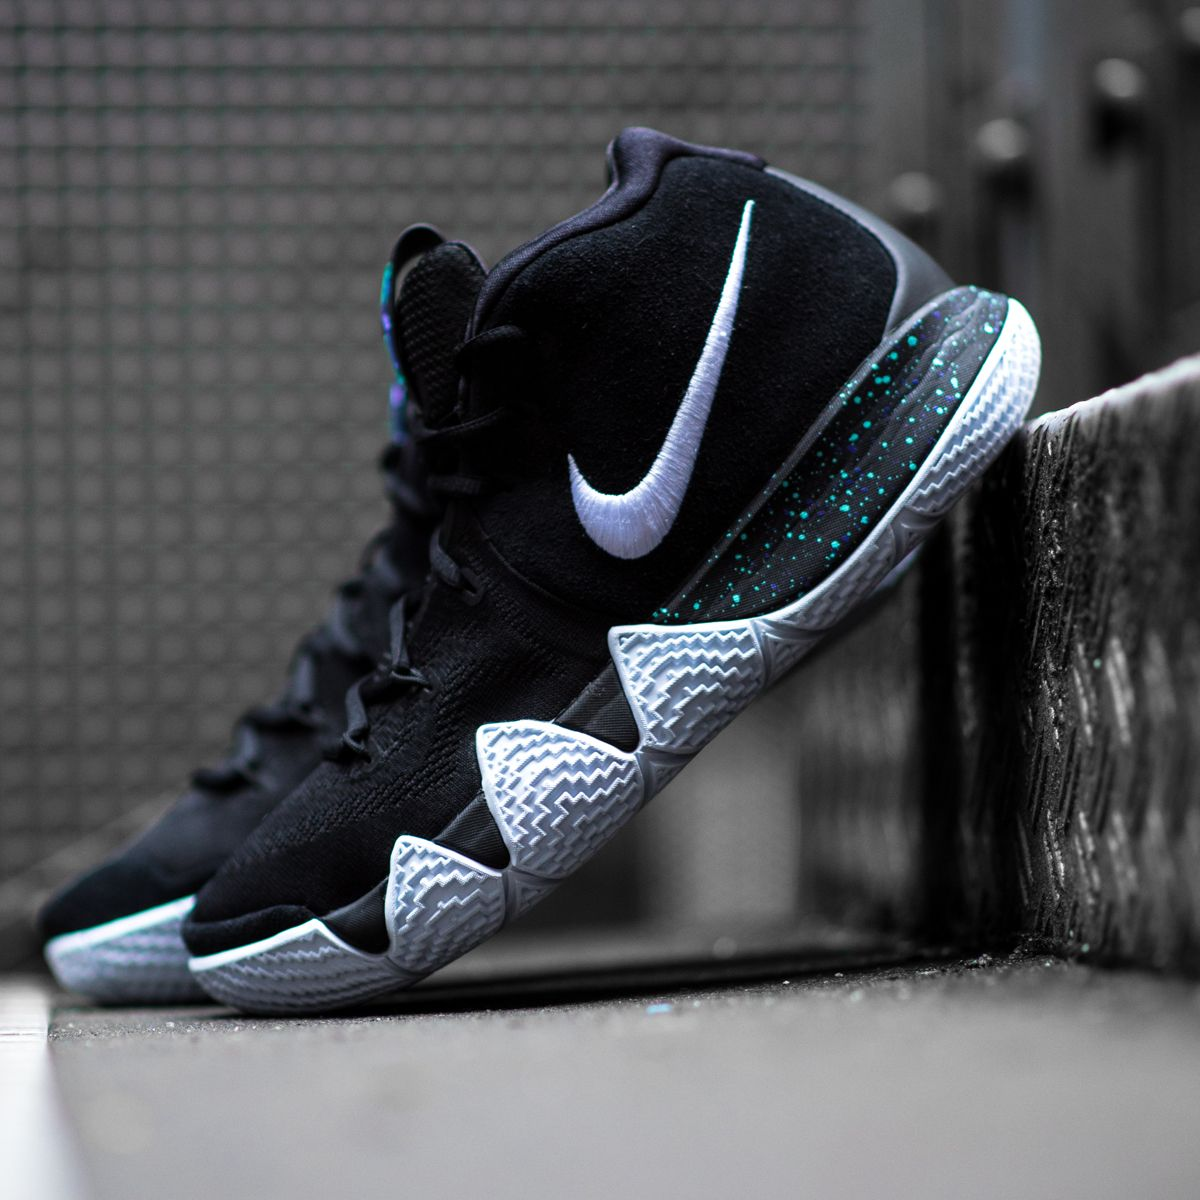 23d33dde2d Kyrie's got some new shoes! Get the Nike Kyrie 4 'Black Ice' now on  KICKZ.com and in selected stores!